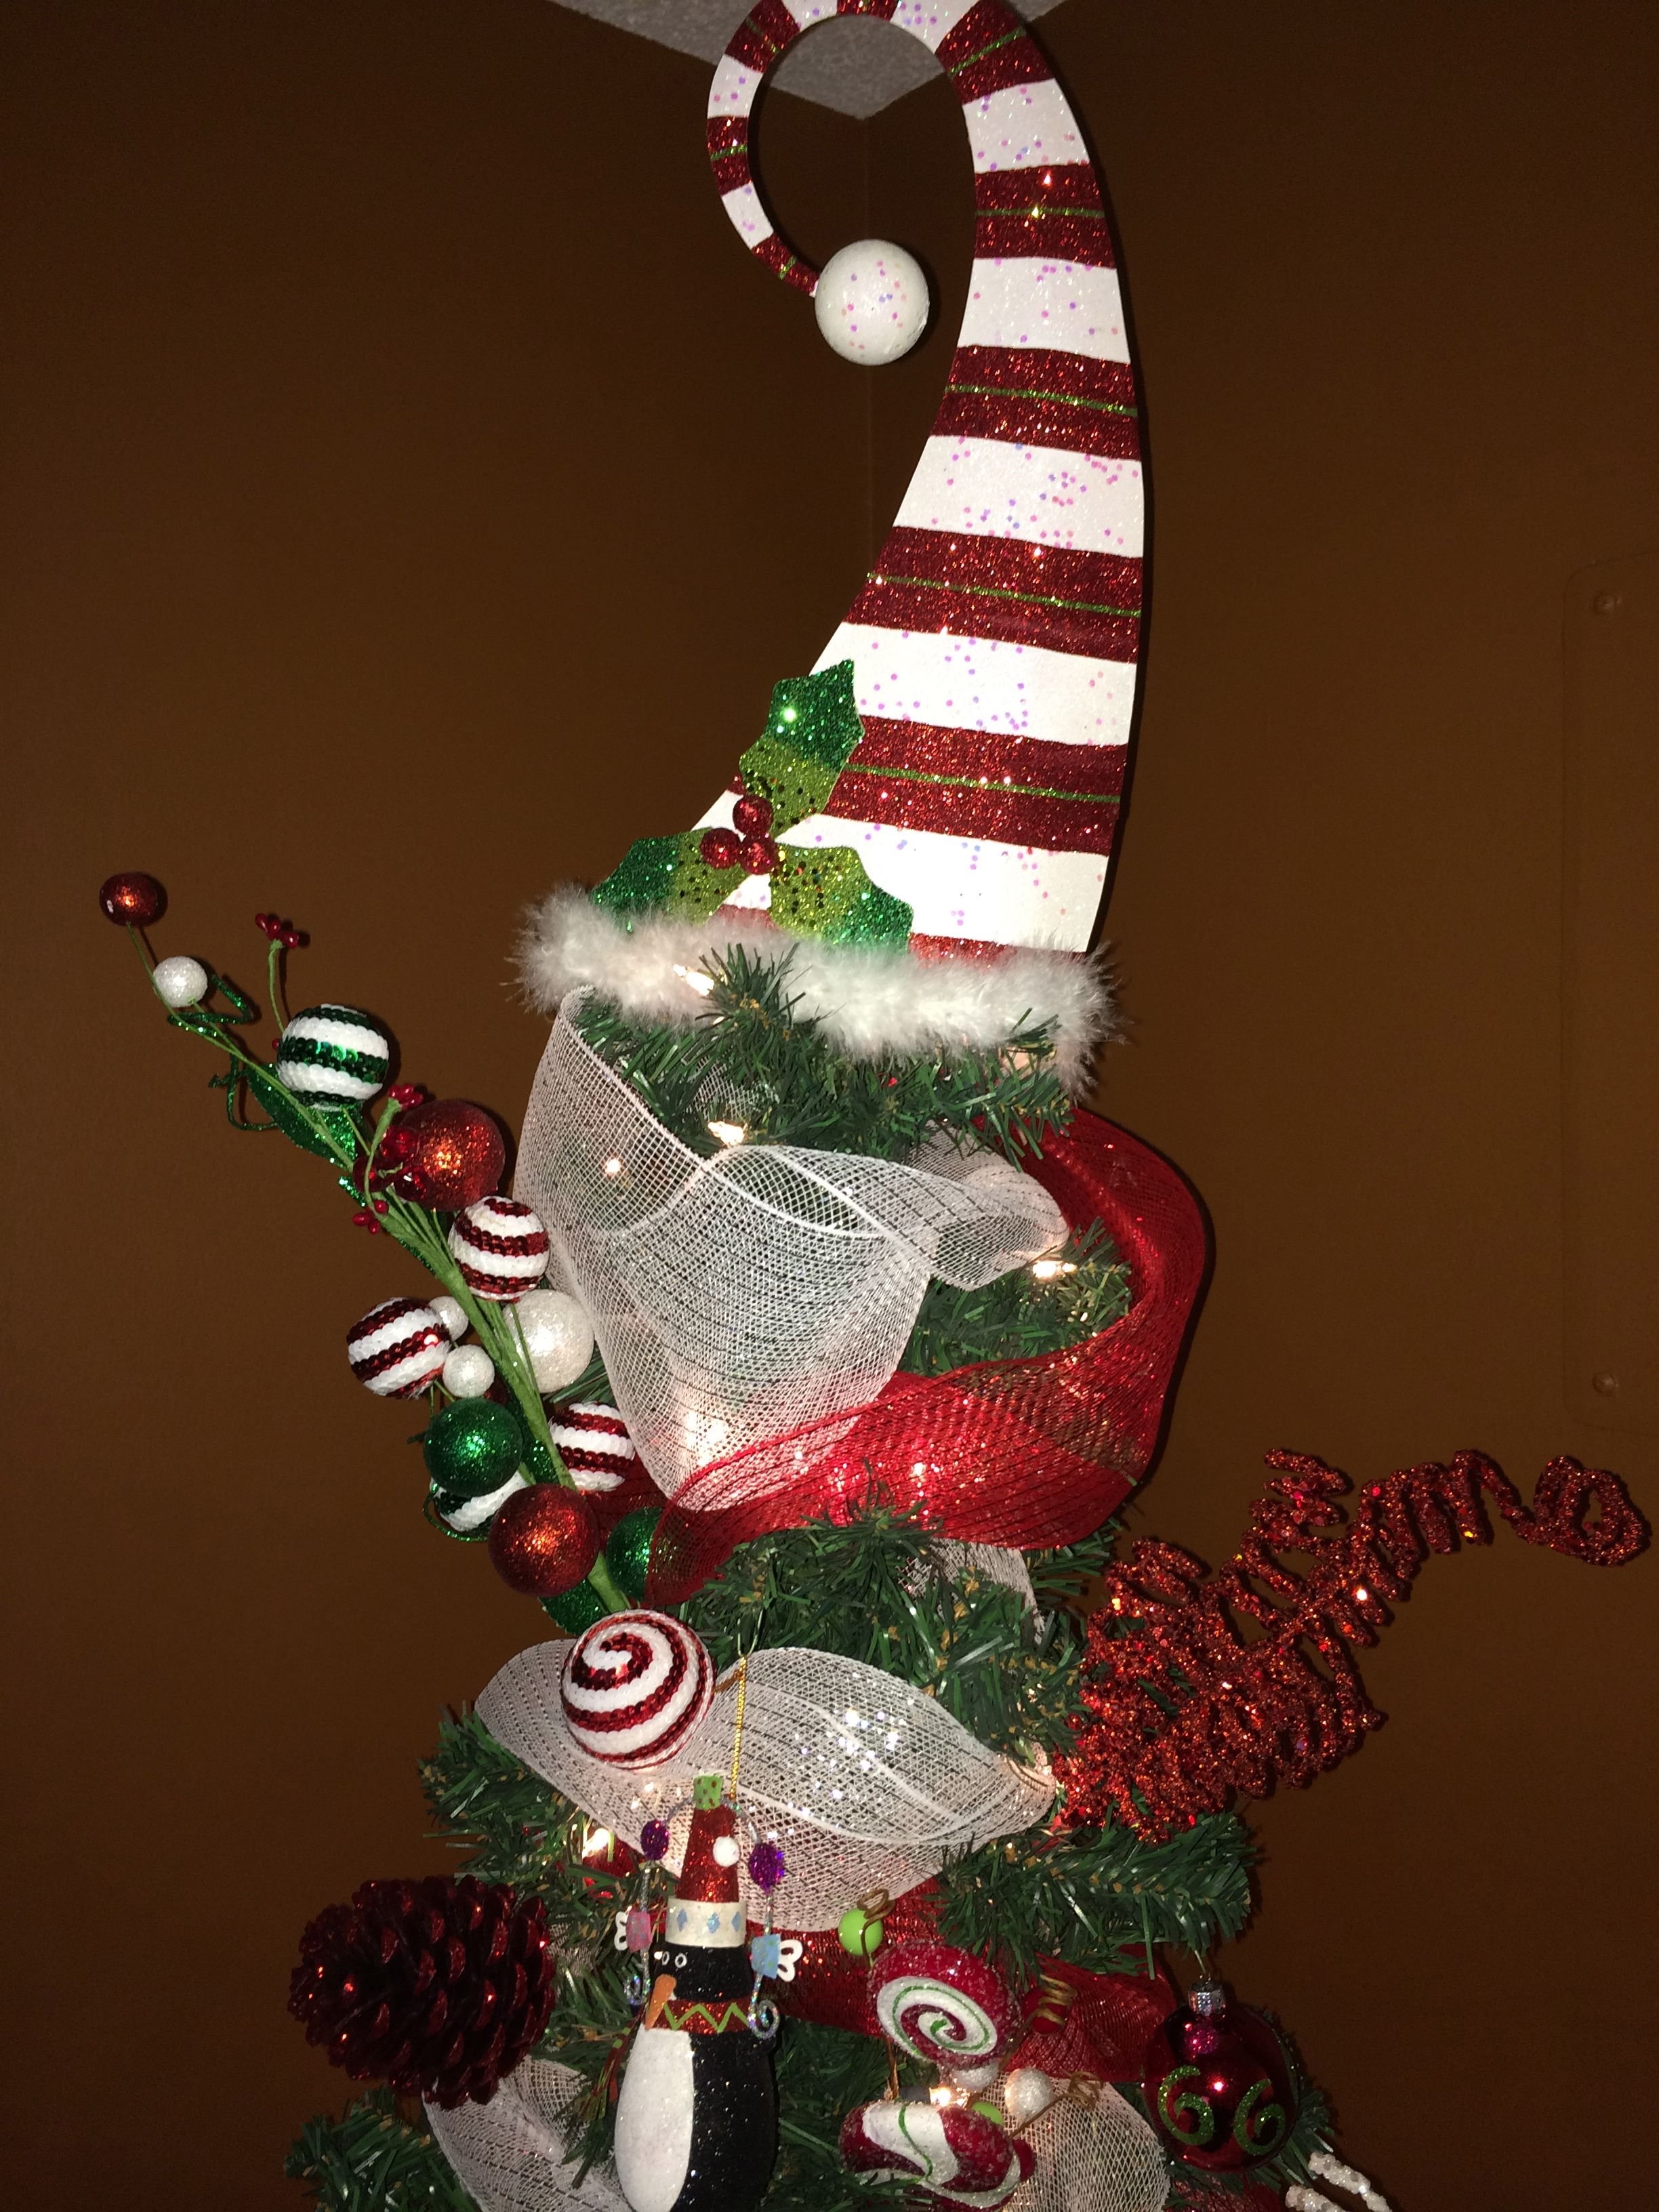 Christmas Tree Whimsical Tree Topper From Pier 1 Christmas Tree Toppers Diy Christmas Tree Topper Whimsical Christmas Trees